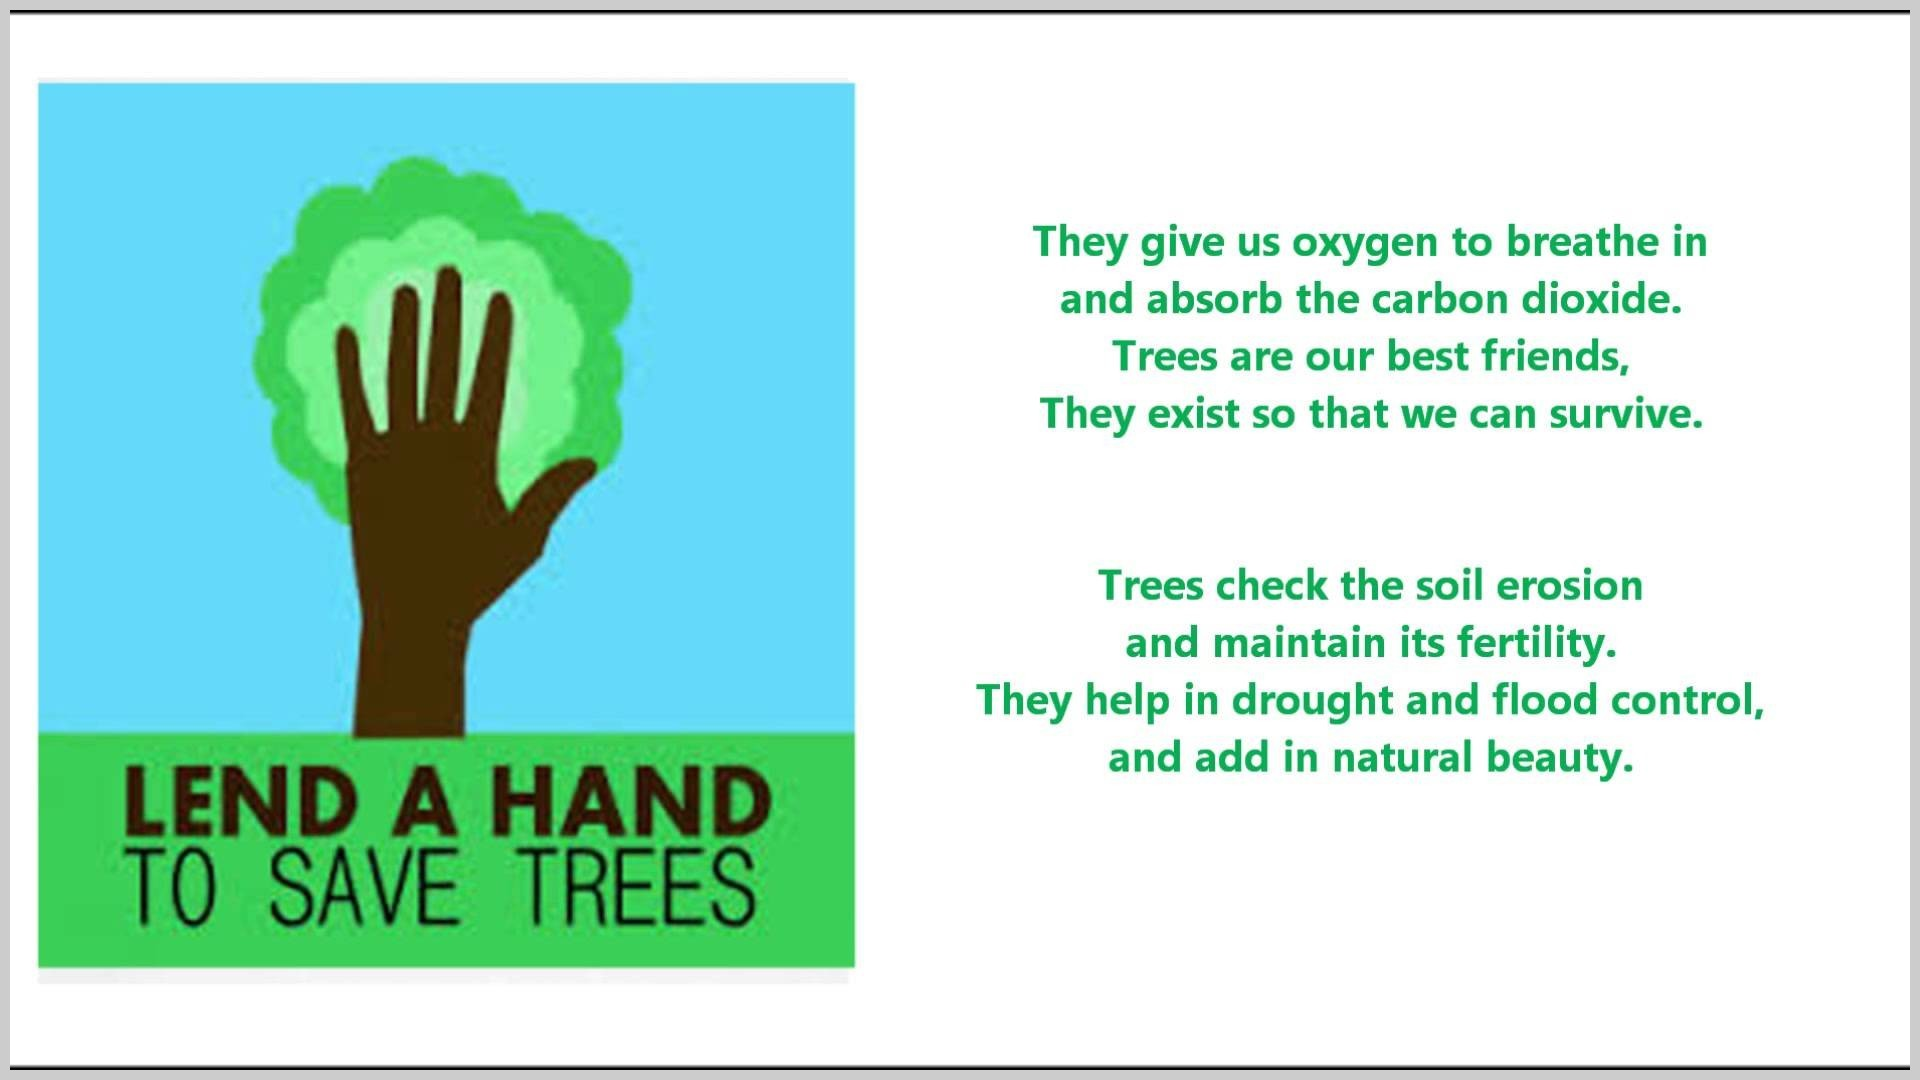 015 How Can We Save Trees Essay Example Of Our Best Friends Poem For Marvelous To In Hindi Telugu 1920